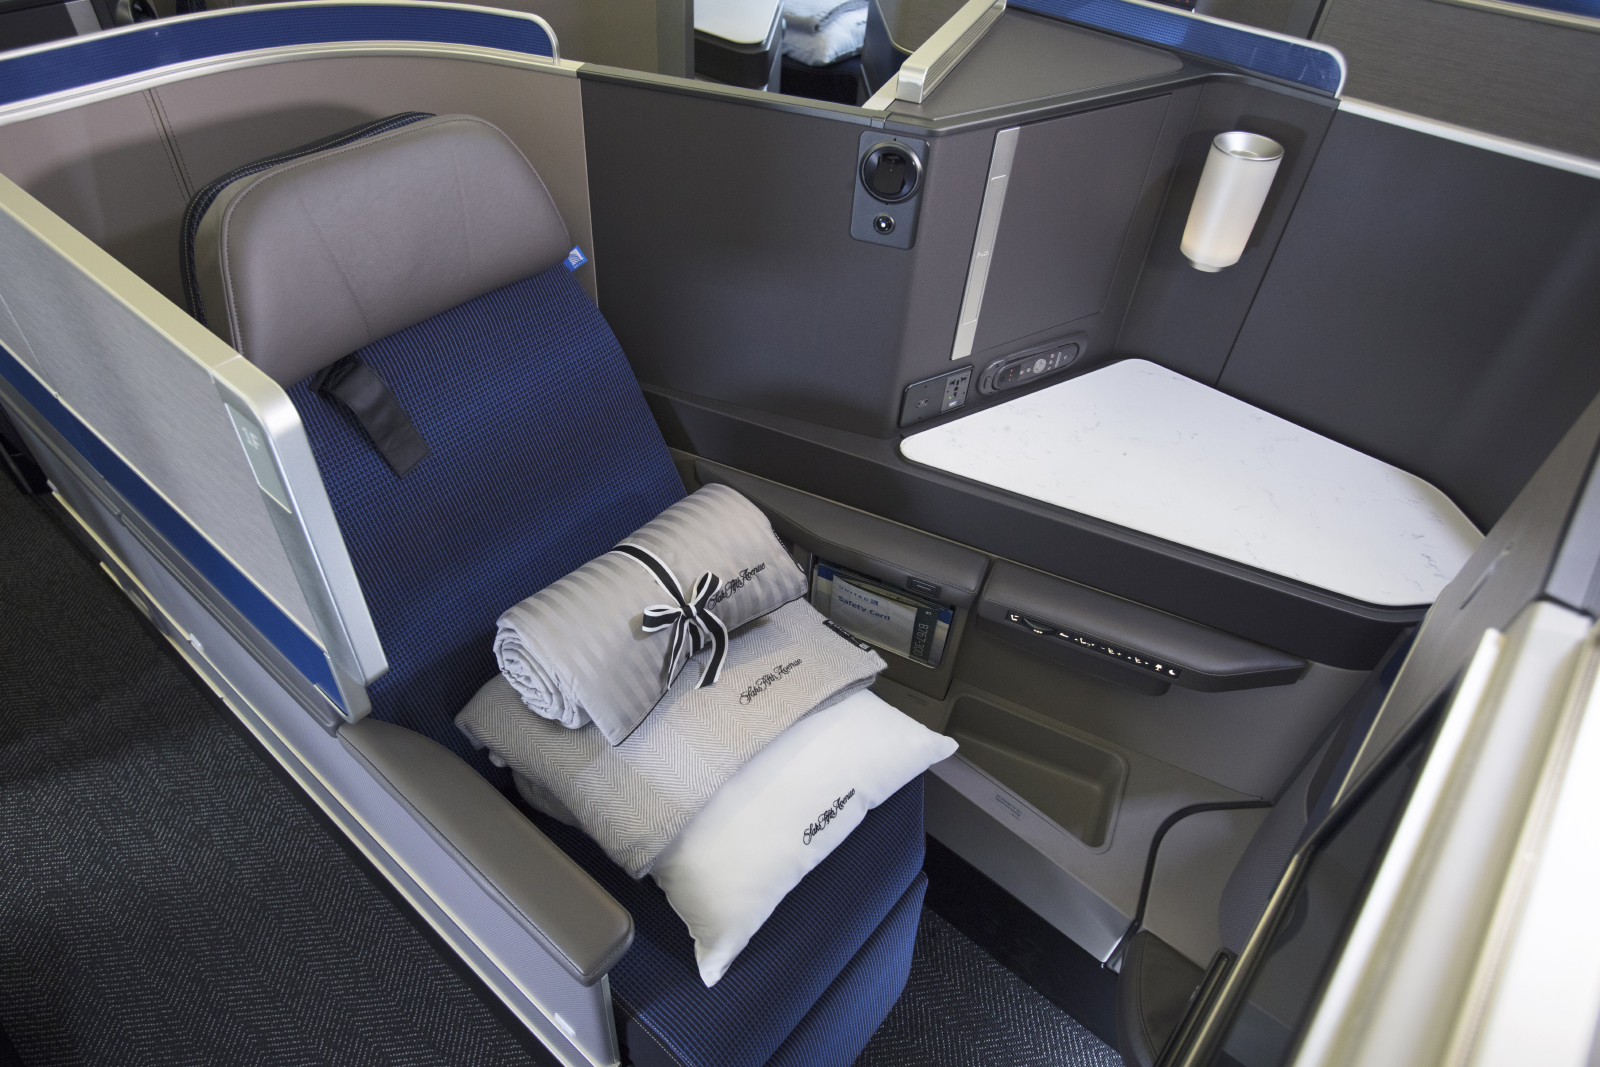 united polaris Business Class to Paris